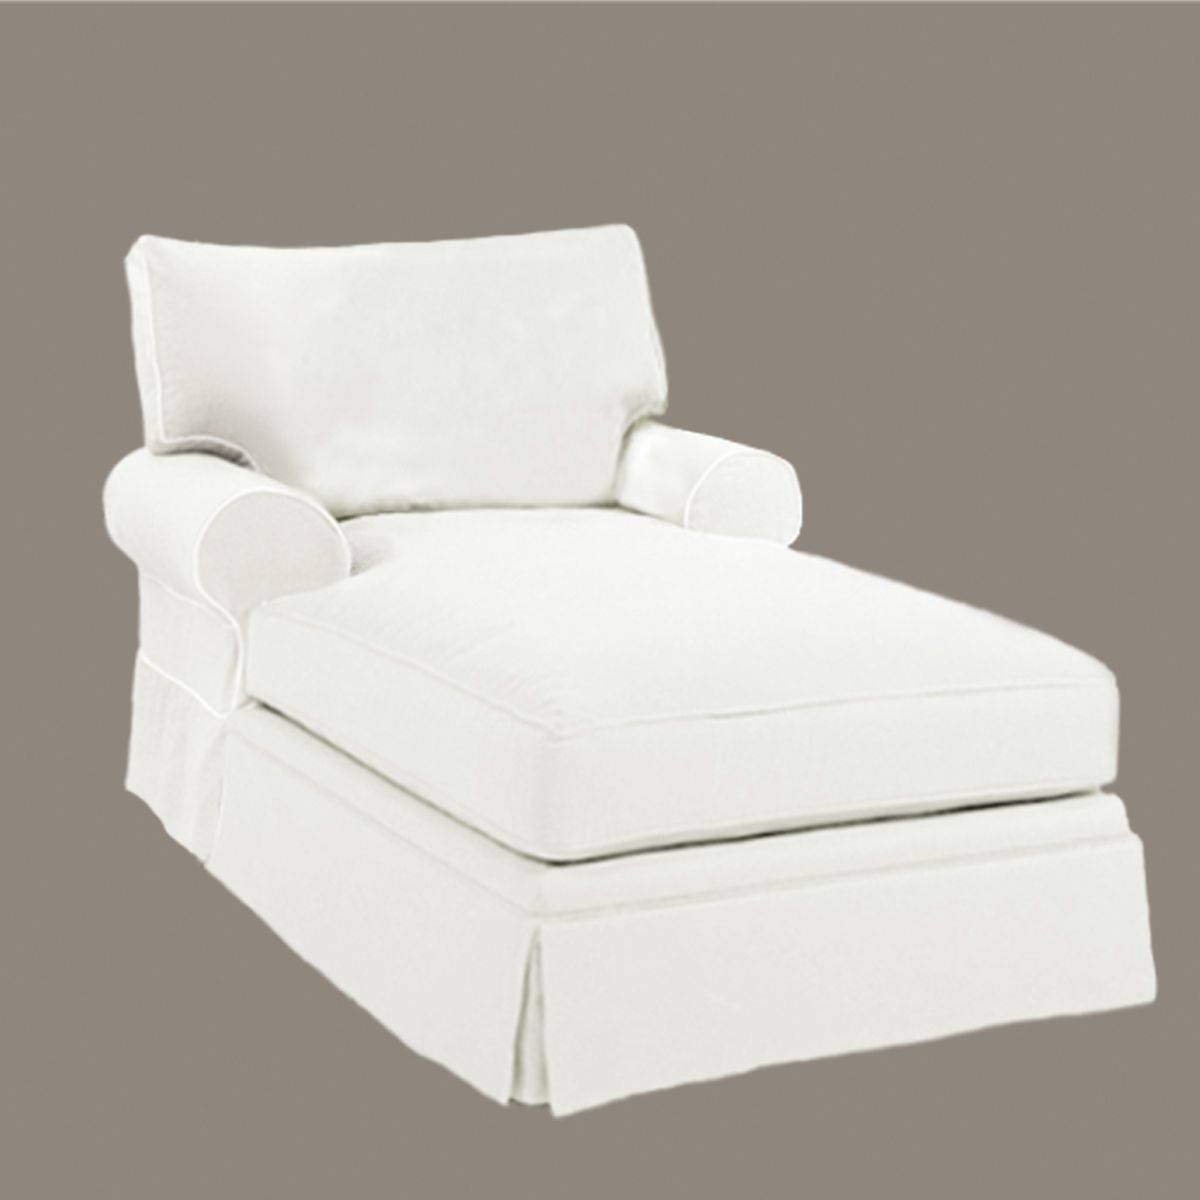 Chaise Lounge Covers Indoor - Thesecretconsul pertaining to Slipcovers For Chaise Lounge Sofas (Image 4 of 15)